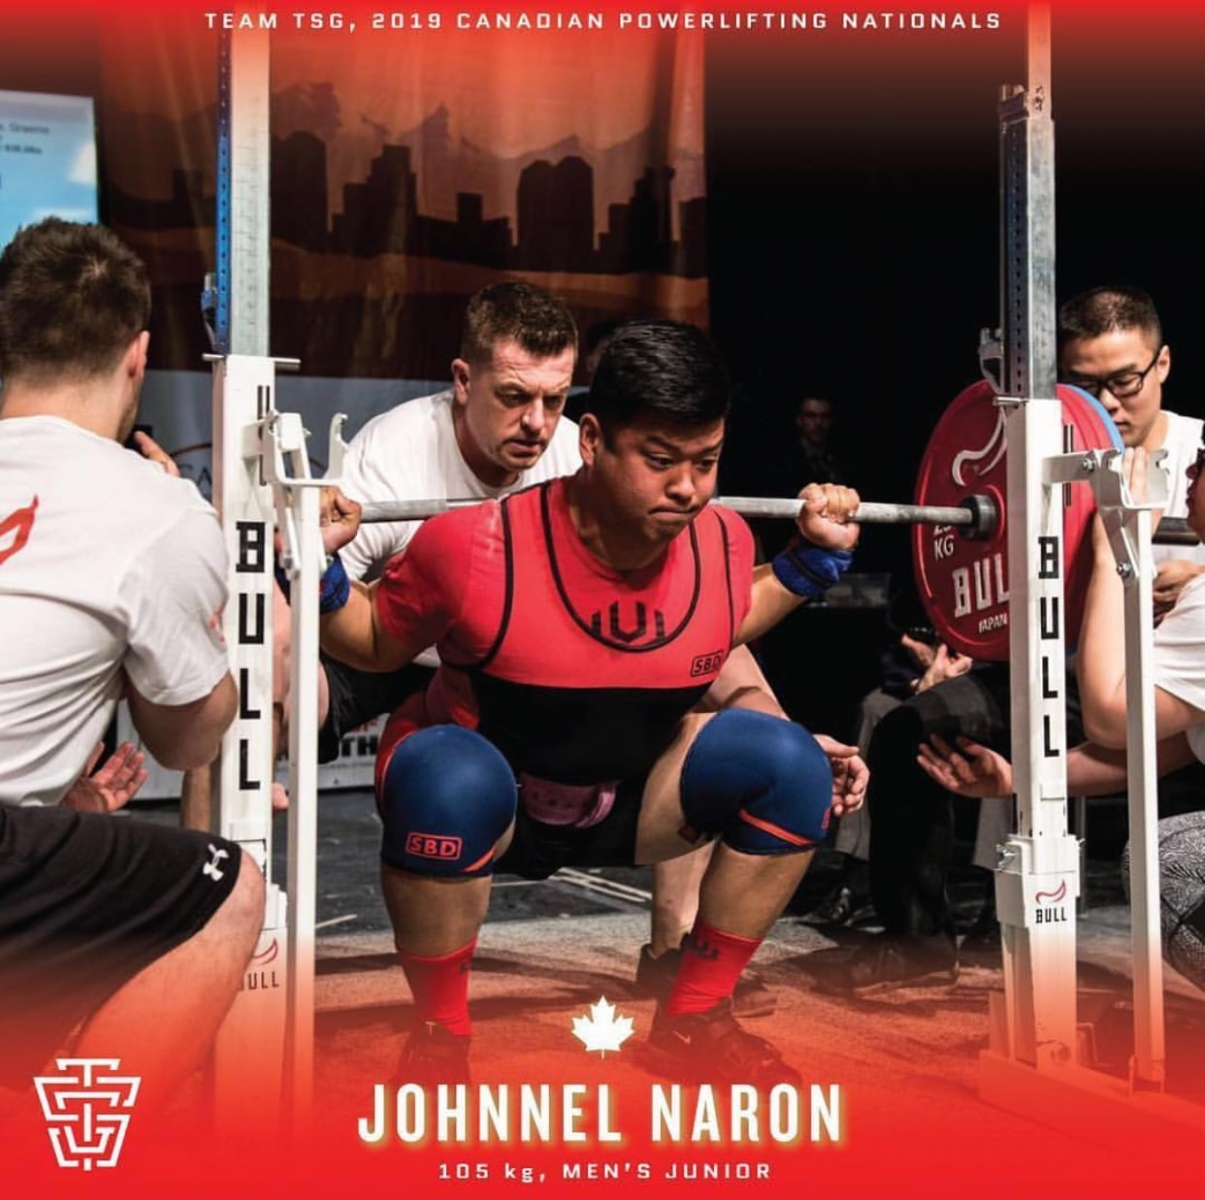 CPU Nationals 2019 Johnnel Naron